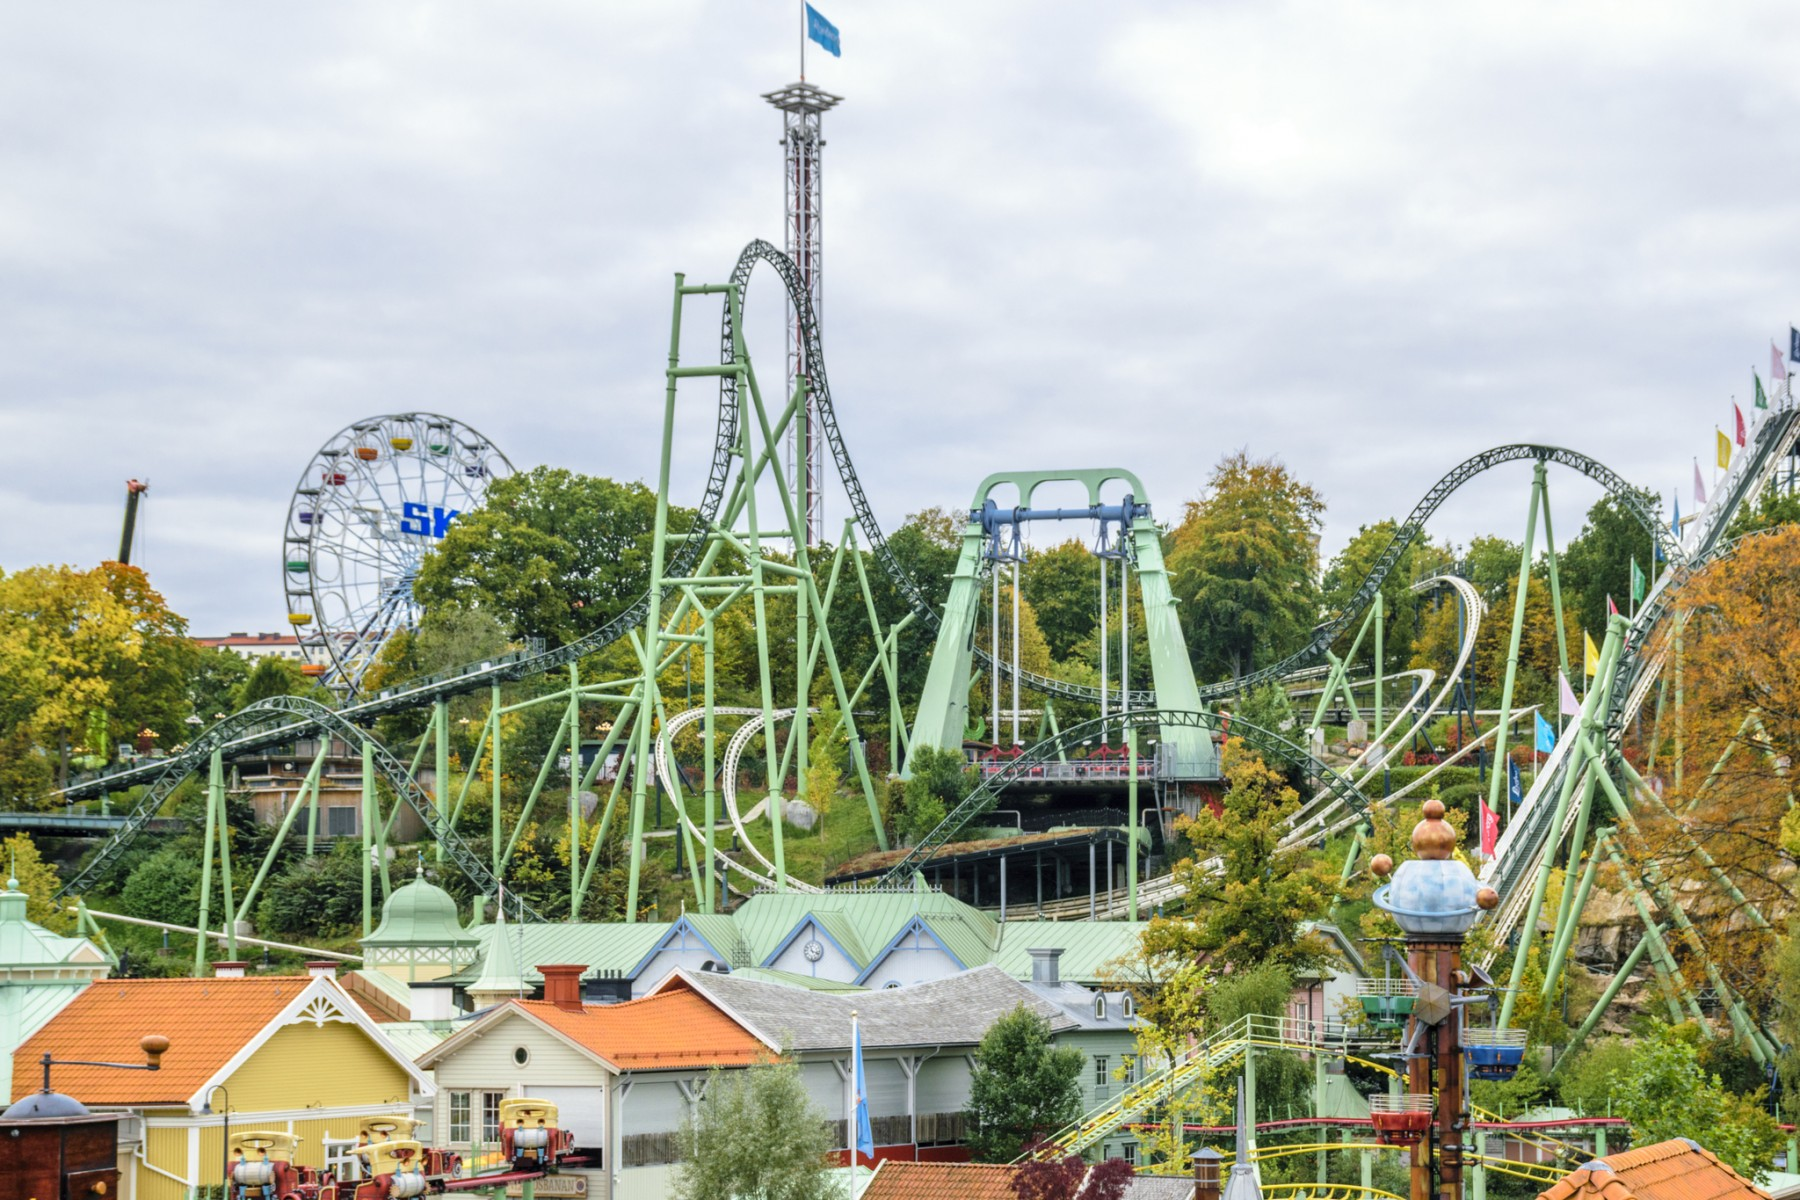 Lisberg Amusement Park 1